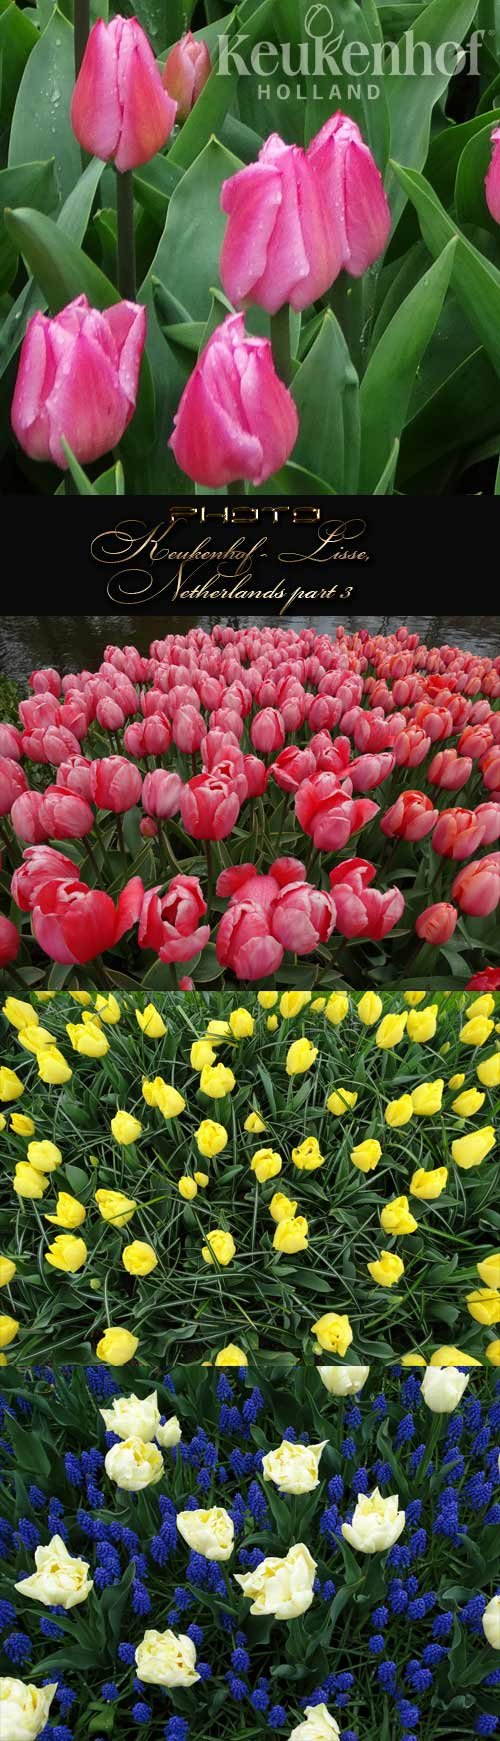 Keukenhof - Lisse, Netherlands part 3